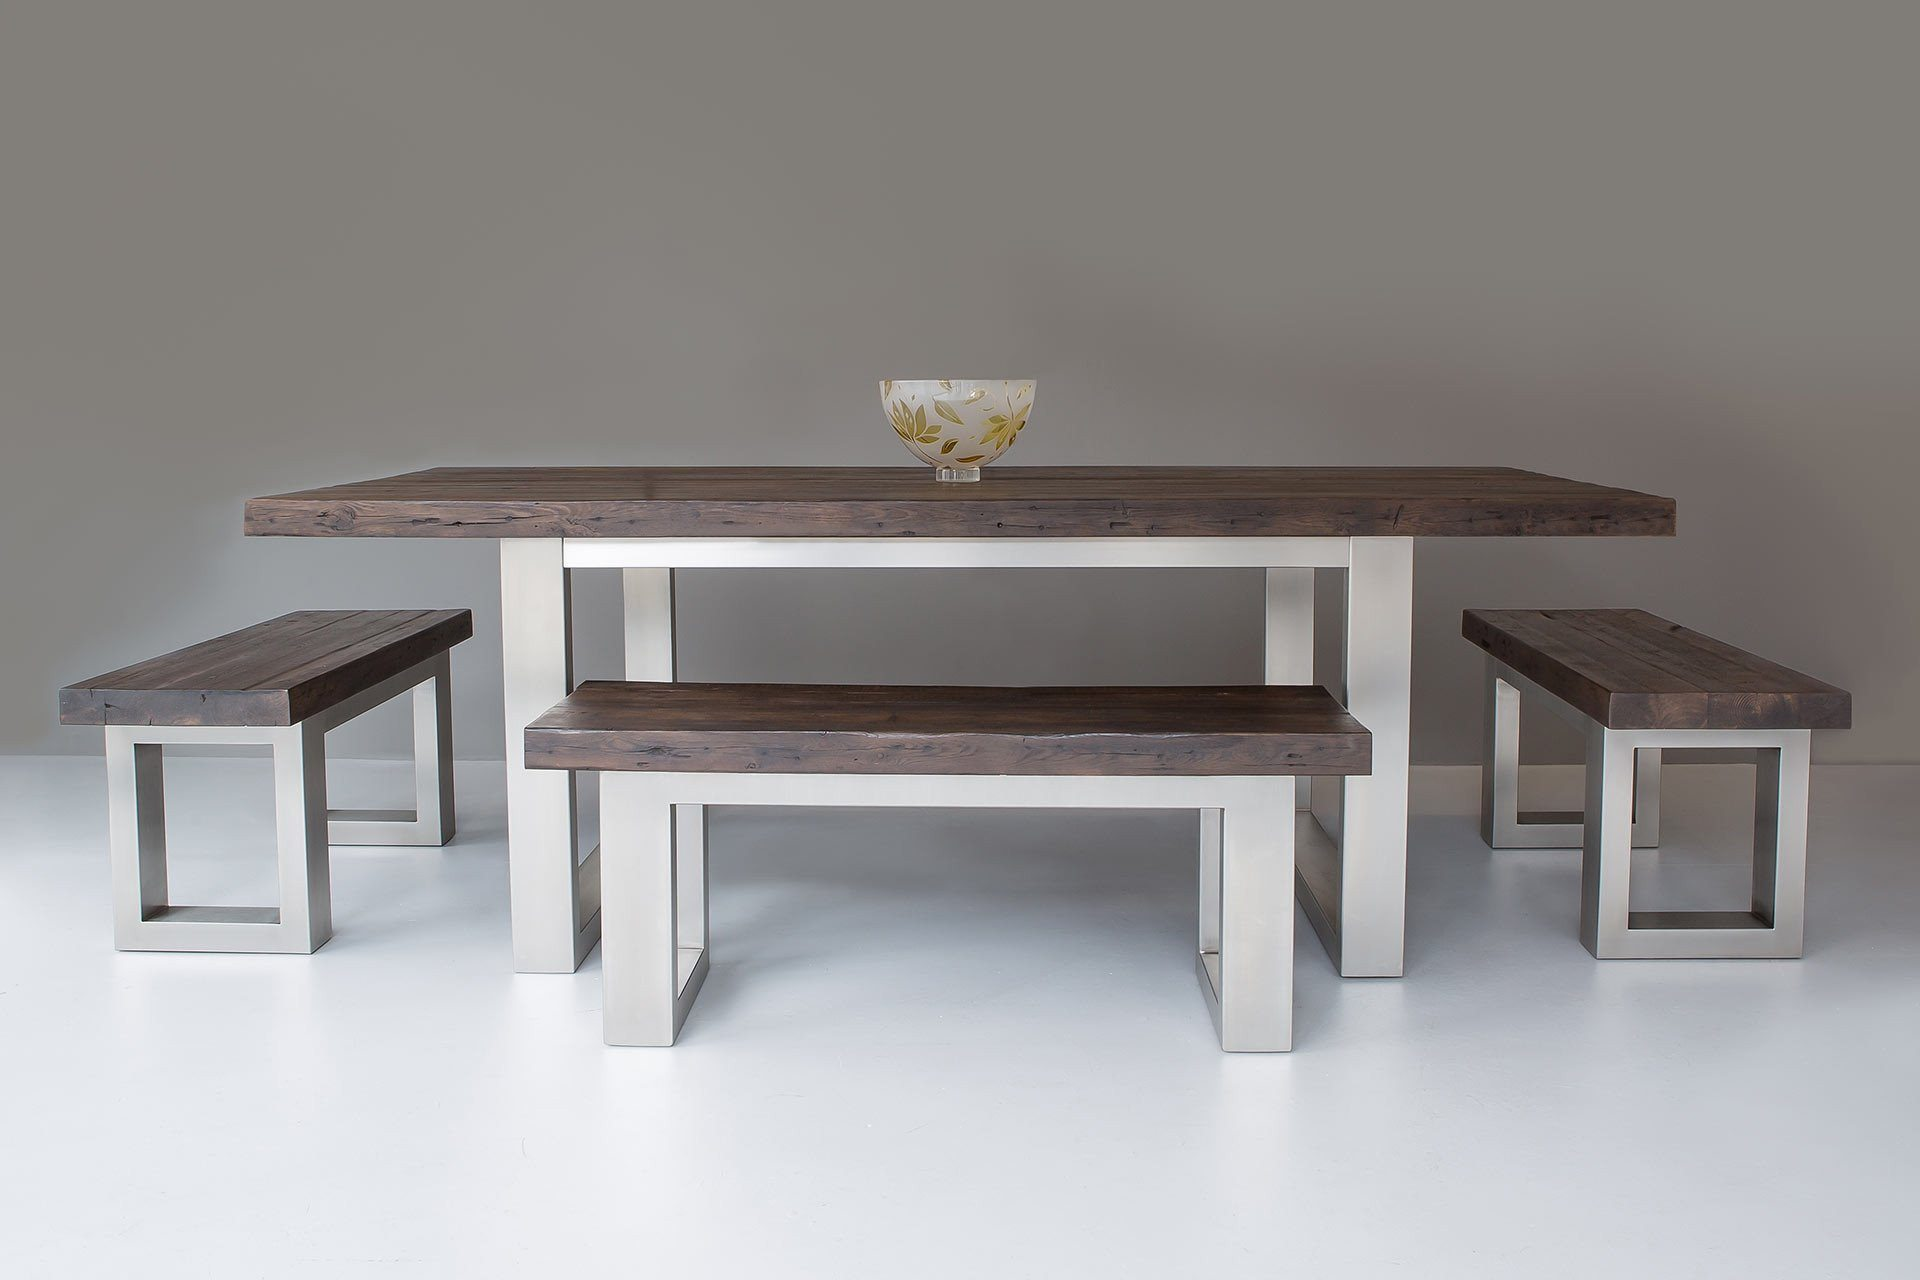 Classic 223cm Long Overhang Table With 117cm Side & 100cm End Benches (Sold Separately)